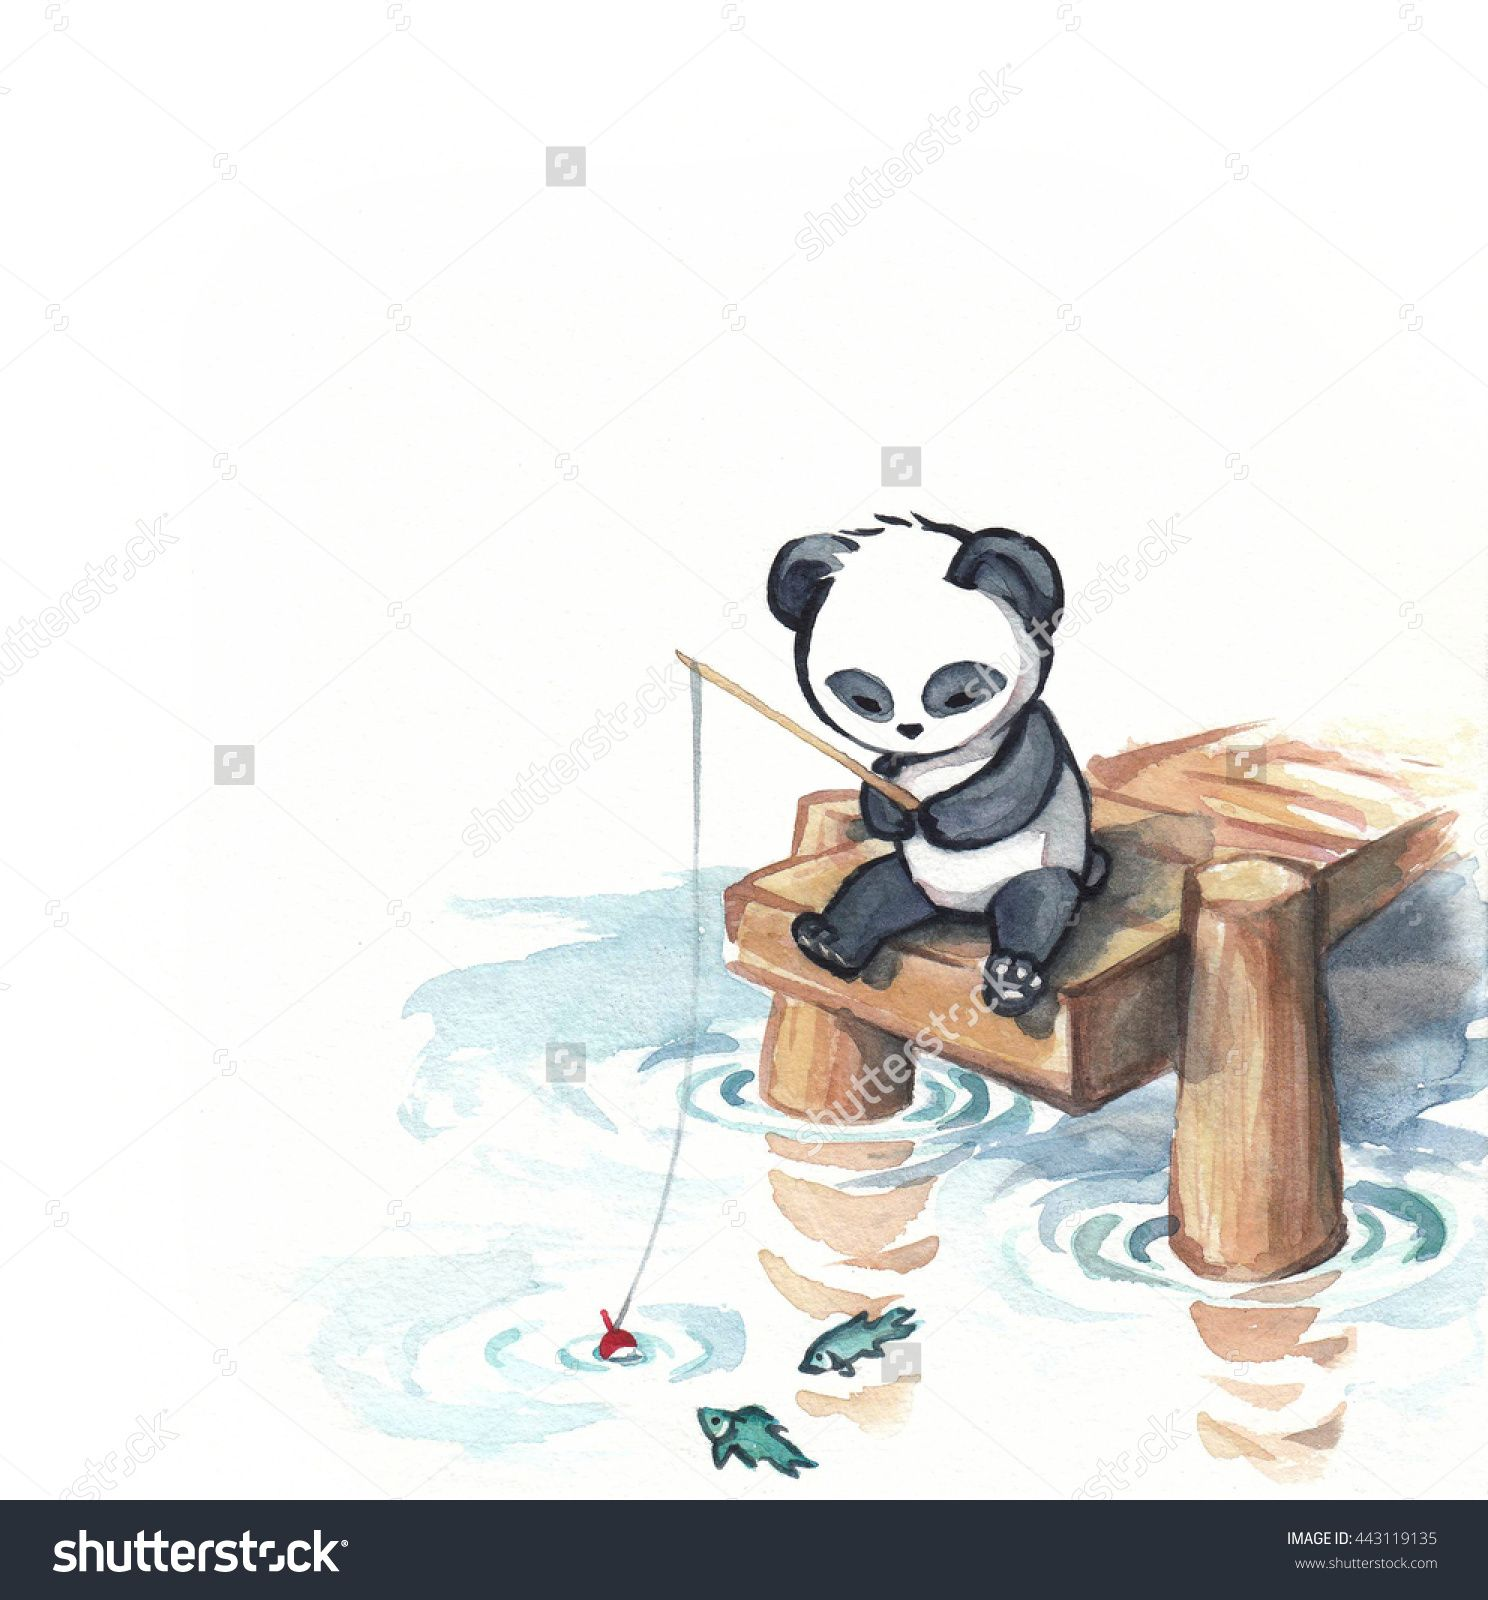 Adorable Panda Bear Fishing From Dock With Fishing Pole Hand